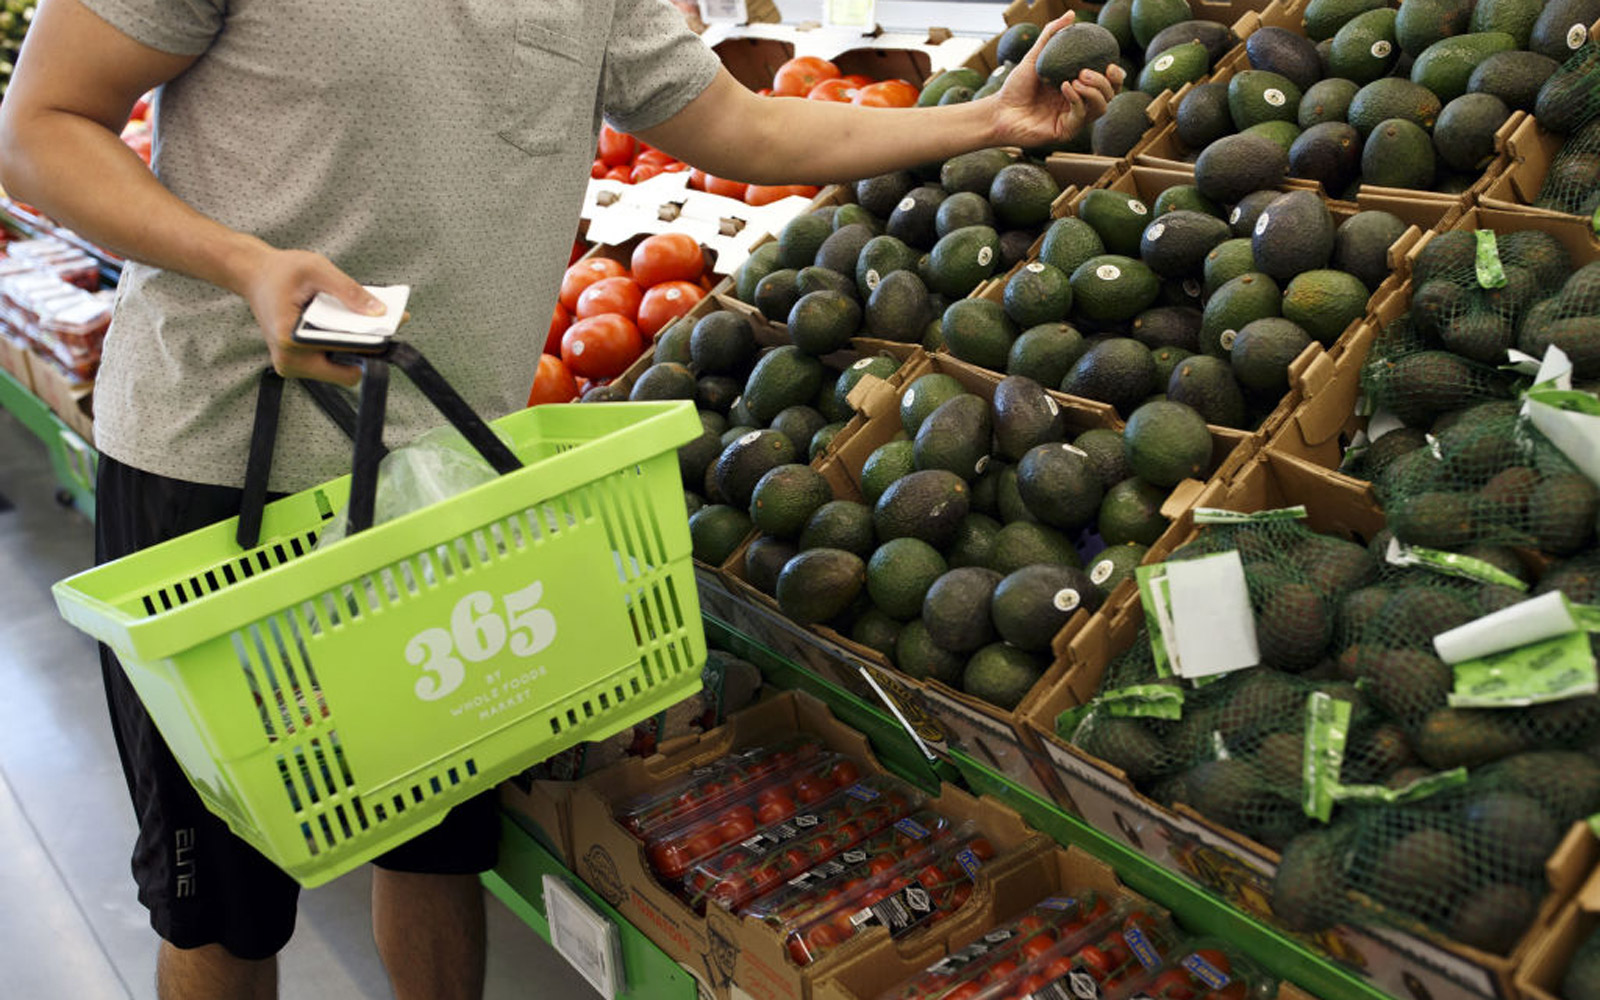 A New Low-cost Whole Foods Just Opened With $1 Avocados and Other Amazing Deals